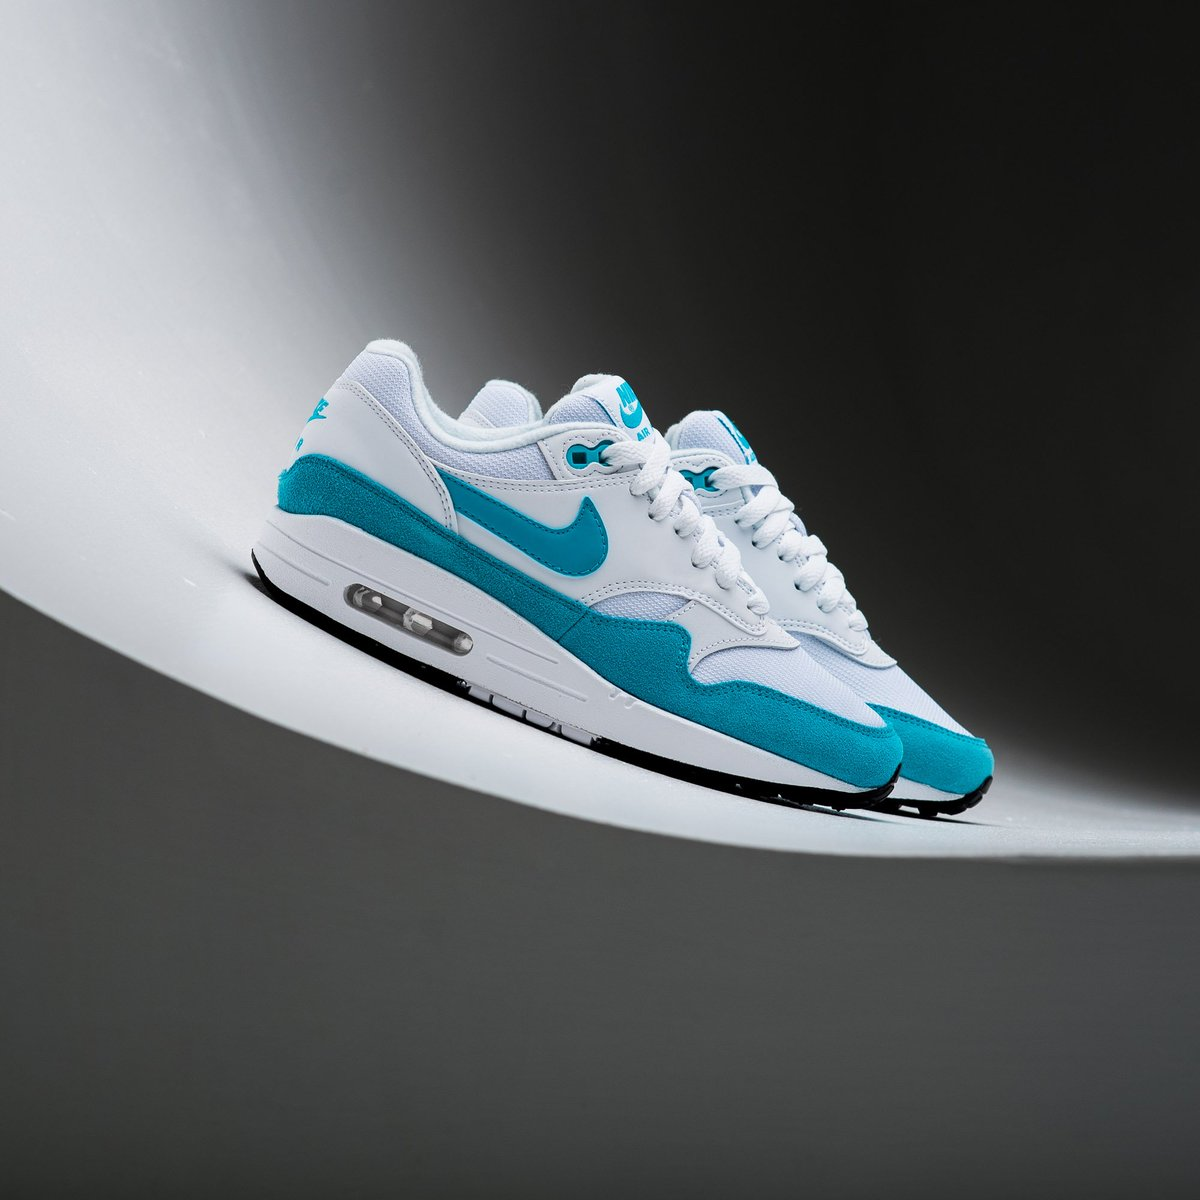 d6e86eda672d4 Now Available    WMNS Nike Air Max 1 - White Atomic Violet    https    sneakerpolitics.com products wmns-nike-air-max-1-white-atomic-violet  …pic.twitter.com  ...